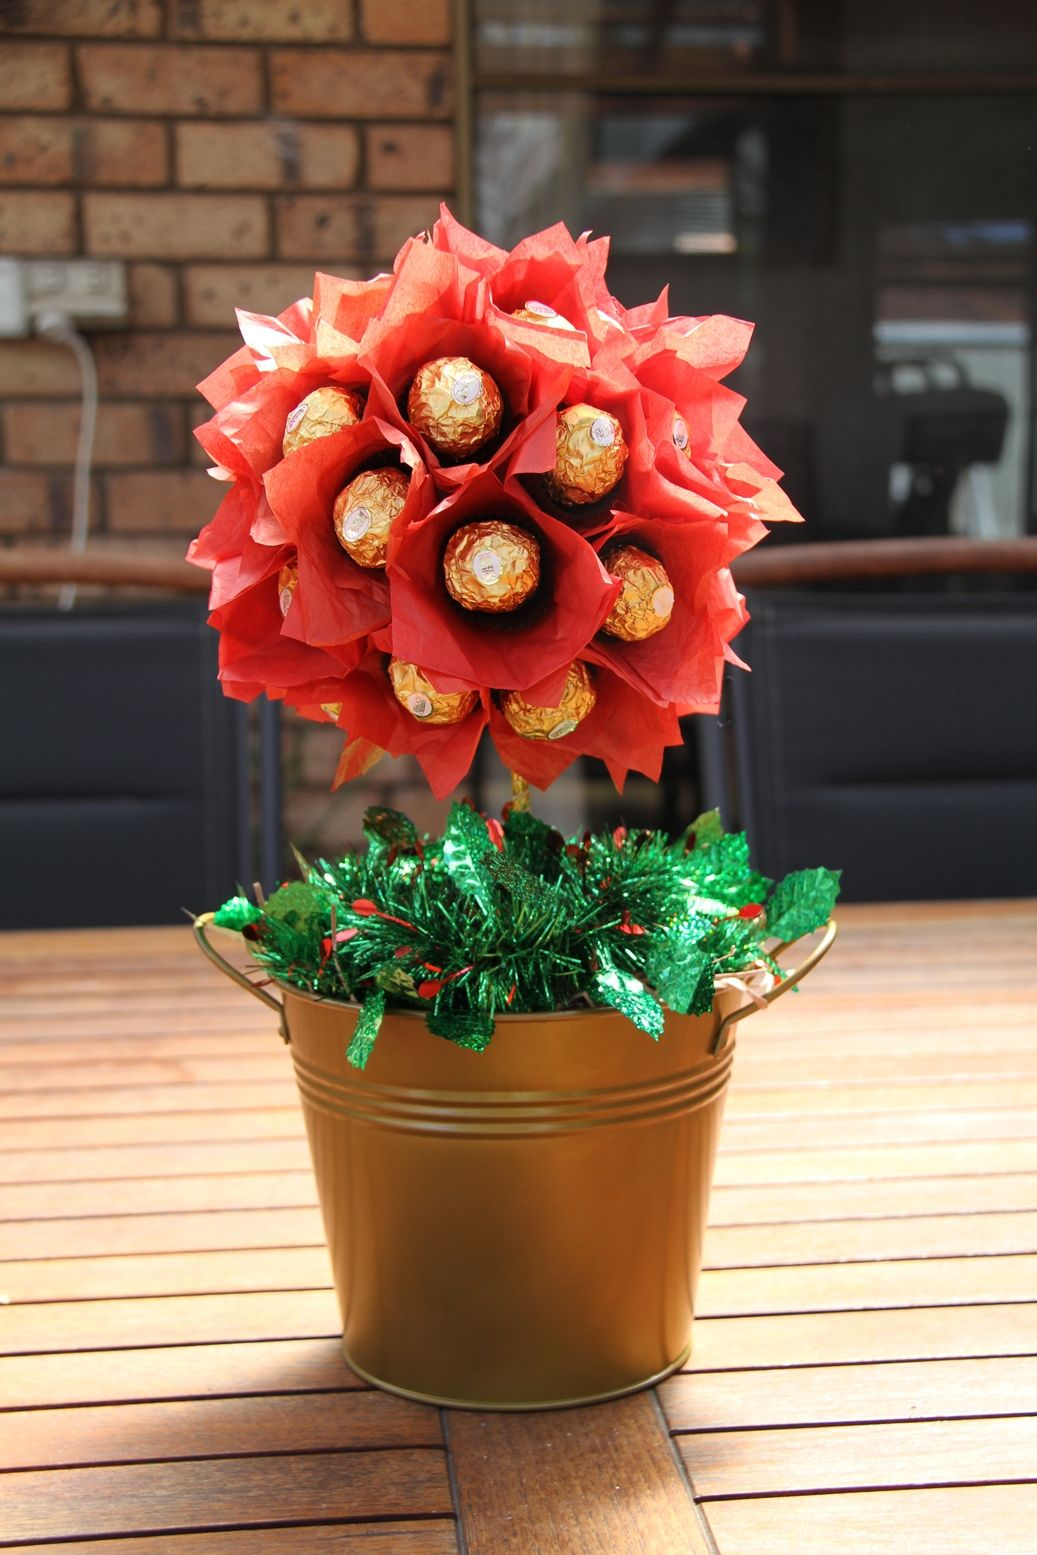 Chocolate flower pot candy bar bouquets pinterest chocolate candy bouquet chocolate flower pot izmirmasajfo Choice Image